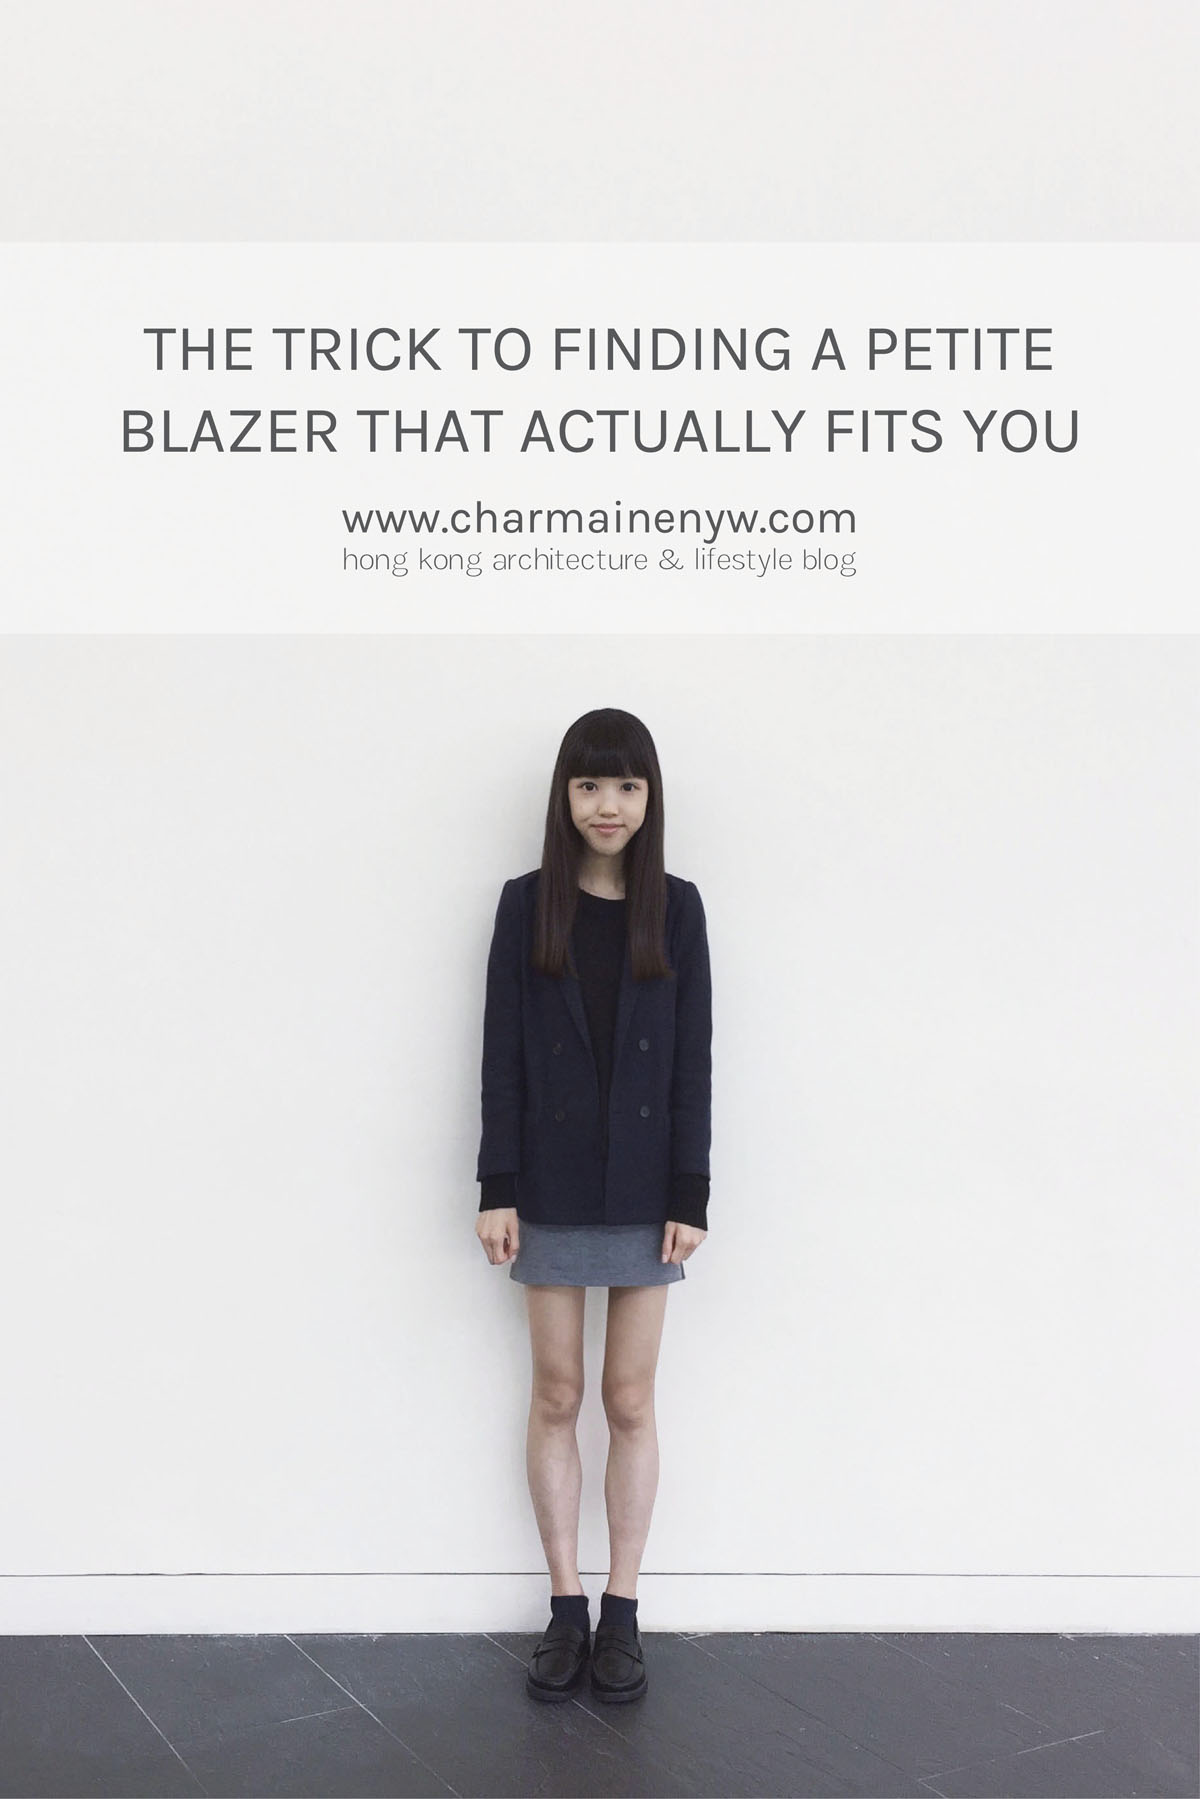 Here's where to find a petite blazer that actually fits you